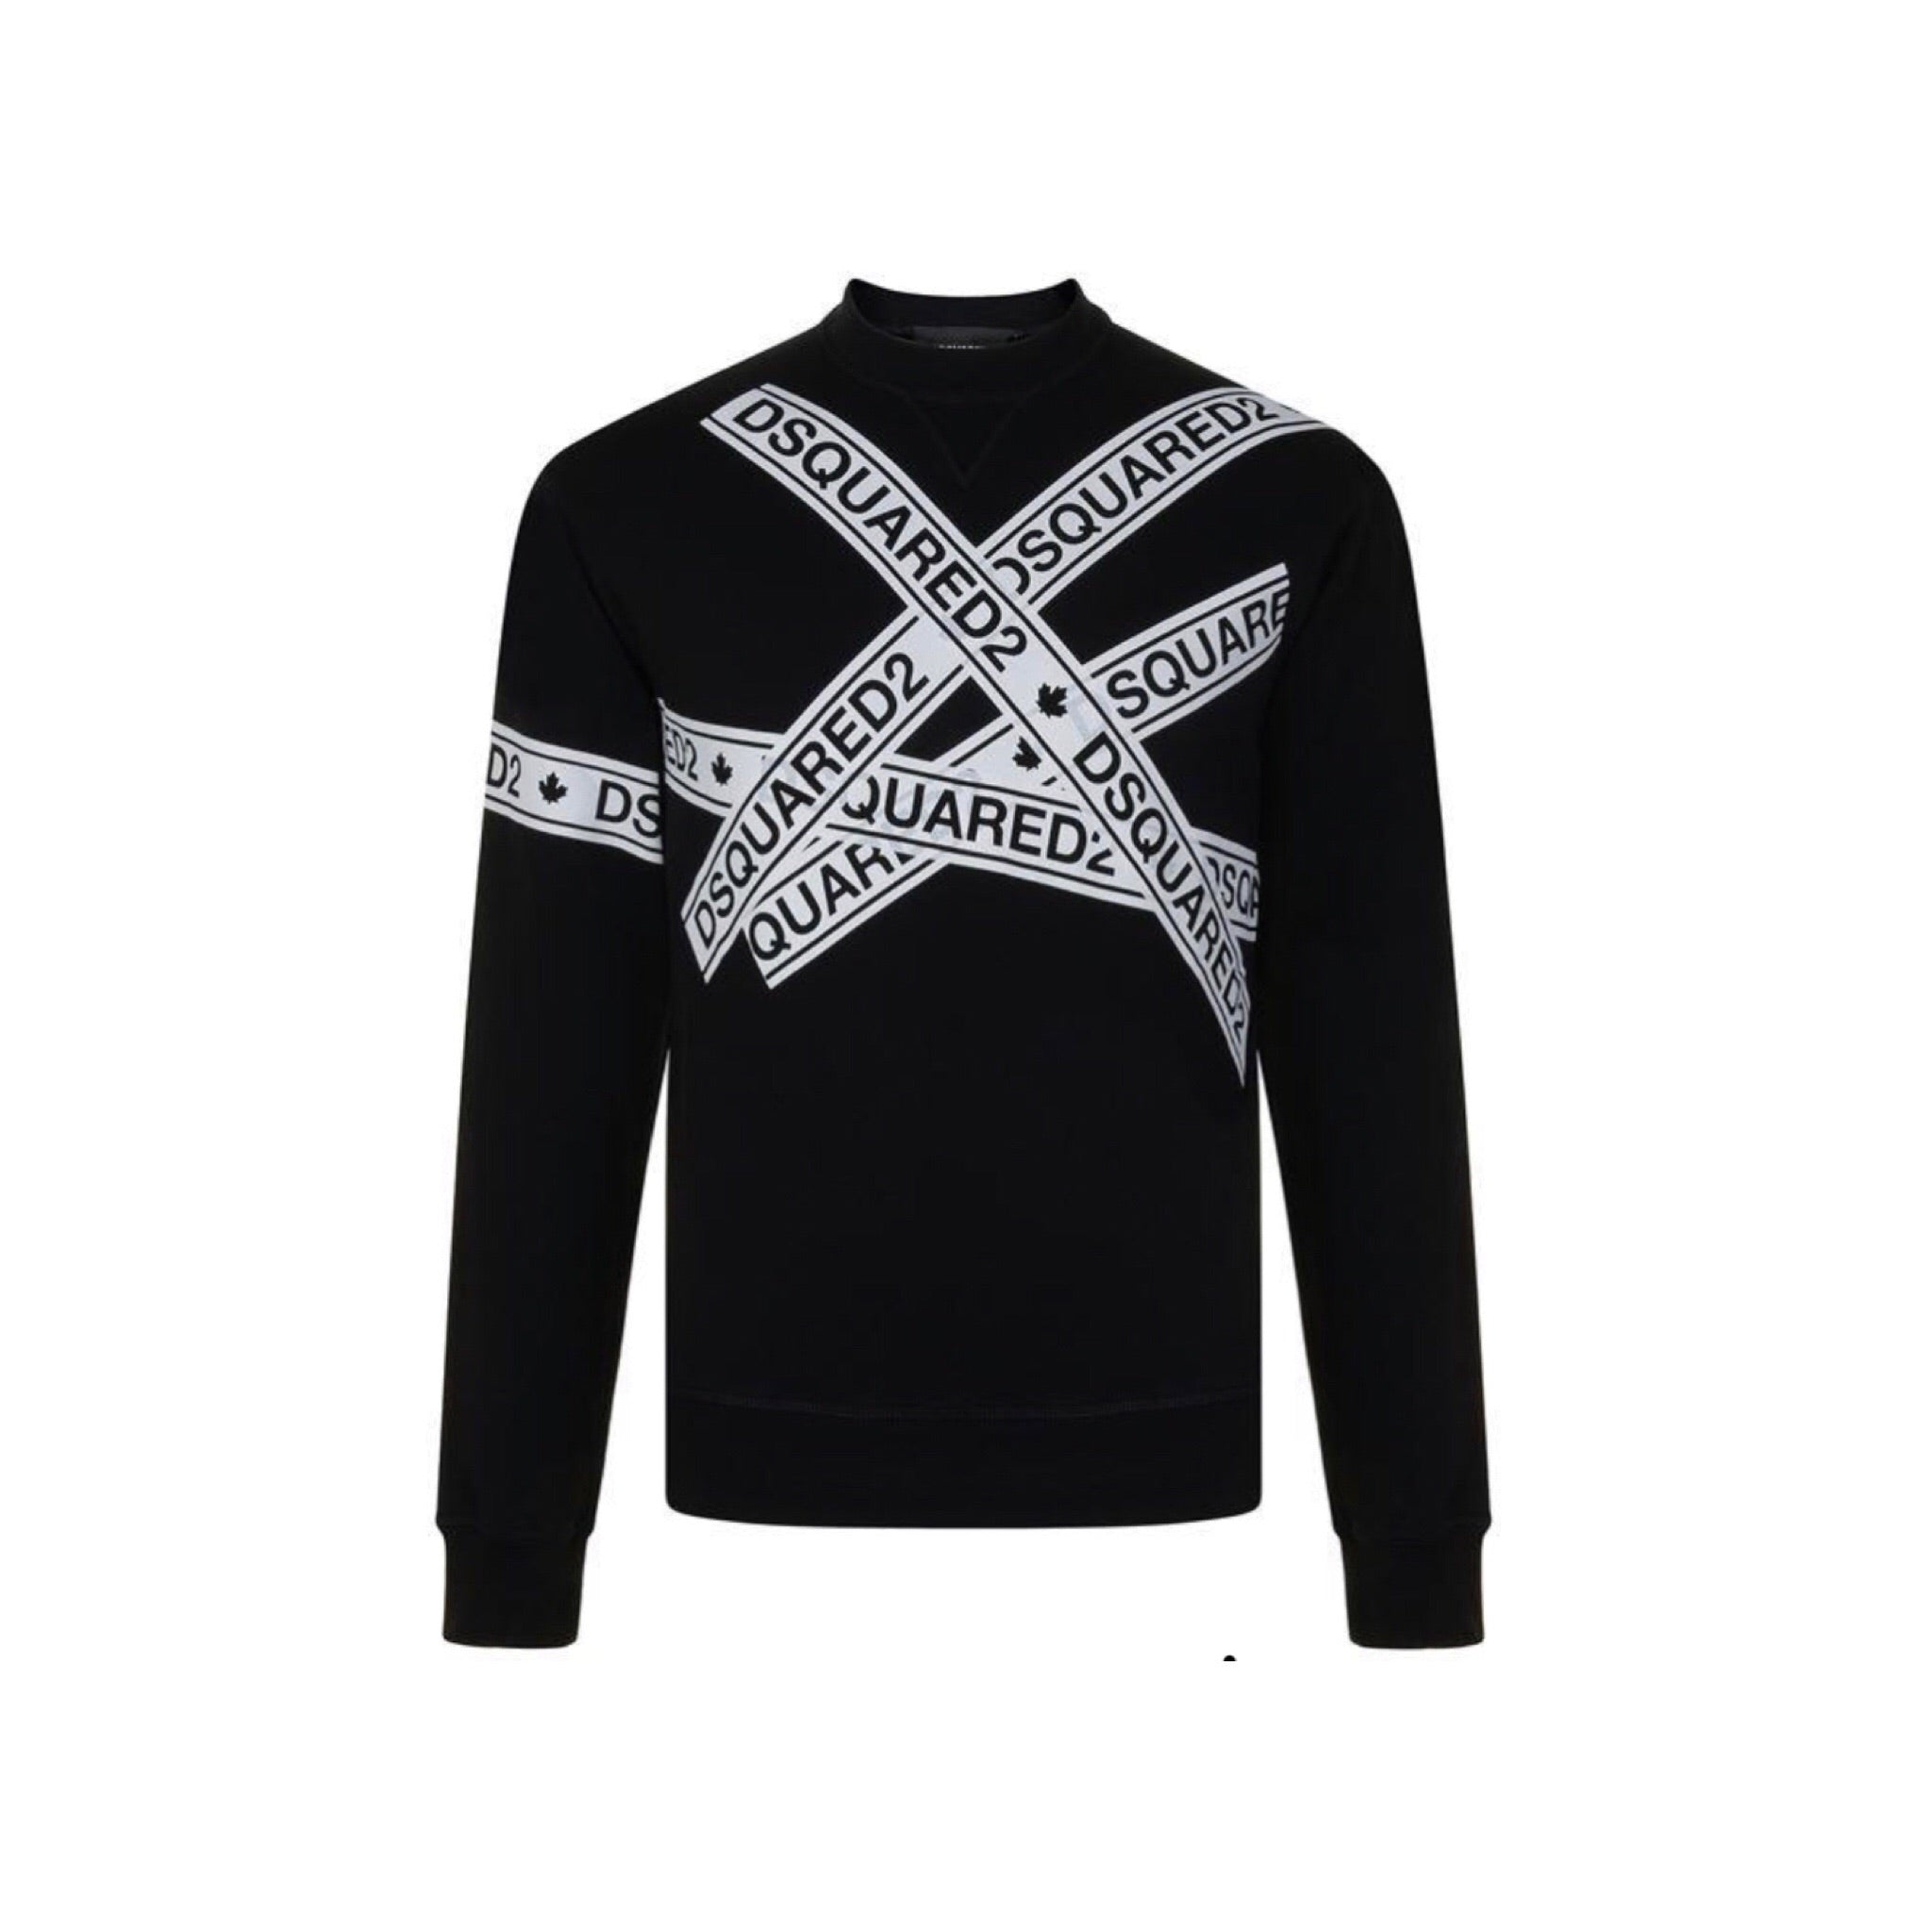 Dsquared 2 multitape sweatshirt - Munazul